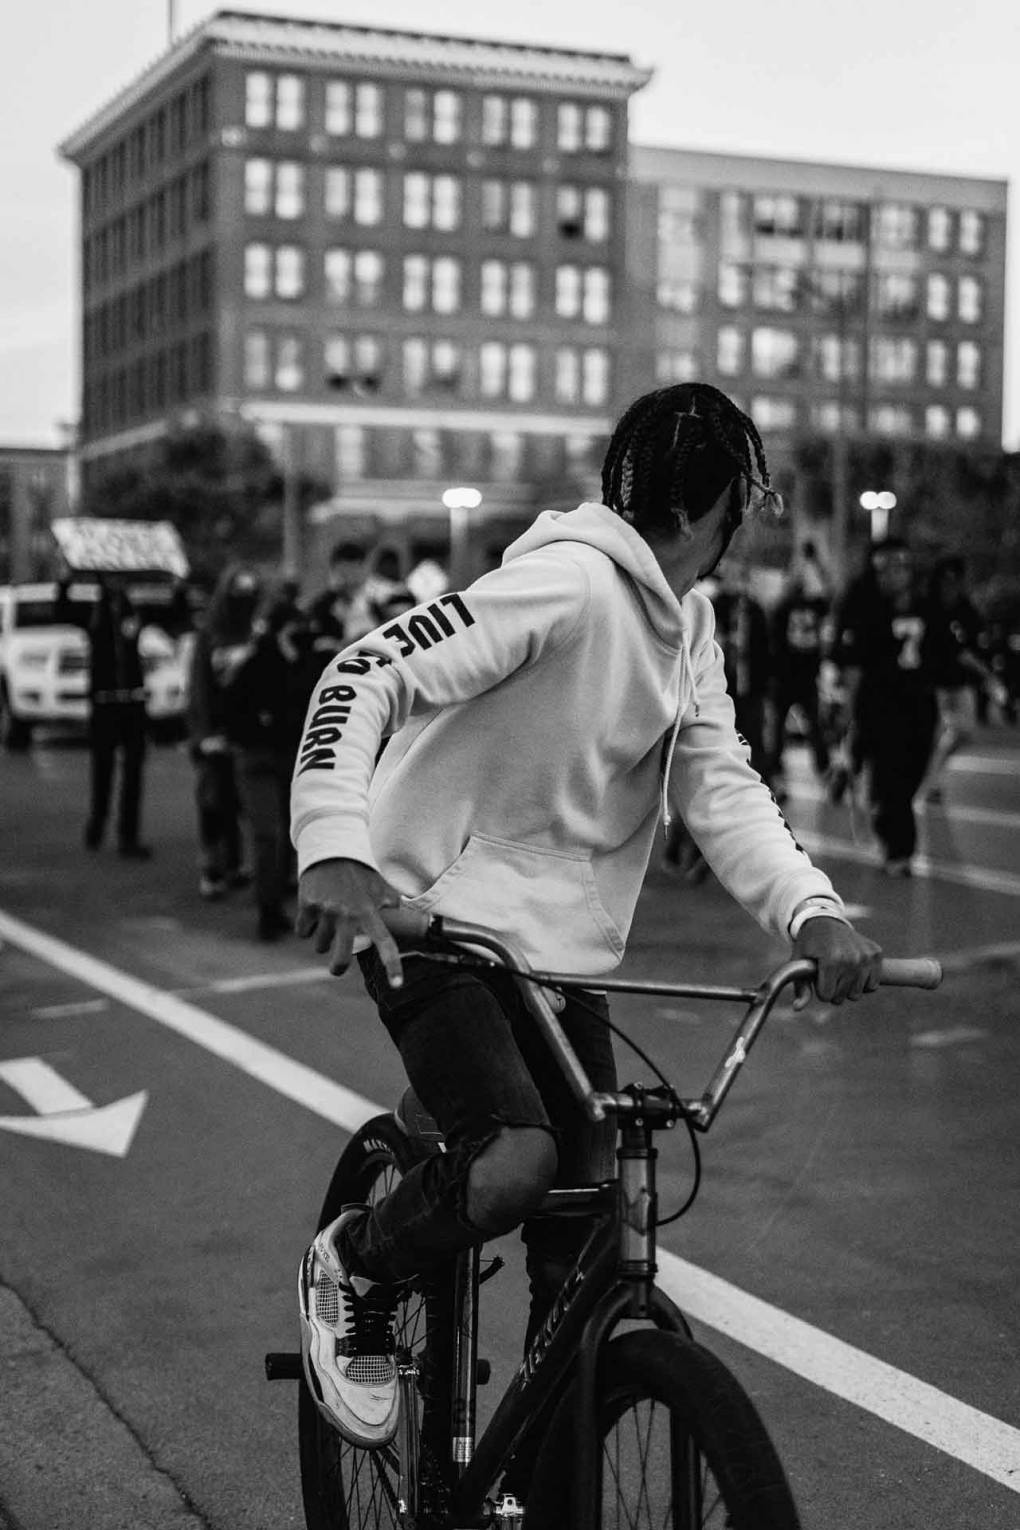 A cyclist amidst a protest in downtown Oakland during the final weekend of May 2020. Photographer Brandon Ruffin says he was hit with rubber bullets and subject to tear gas while taking these photos.